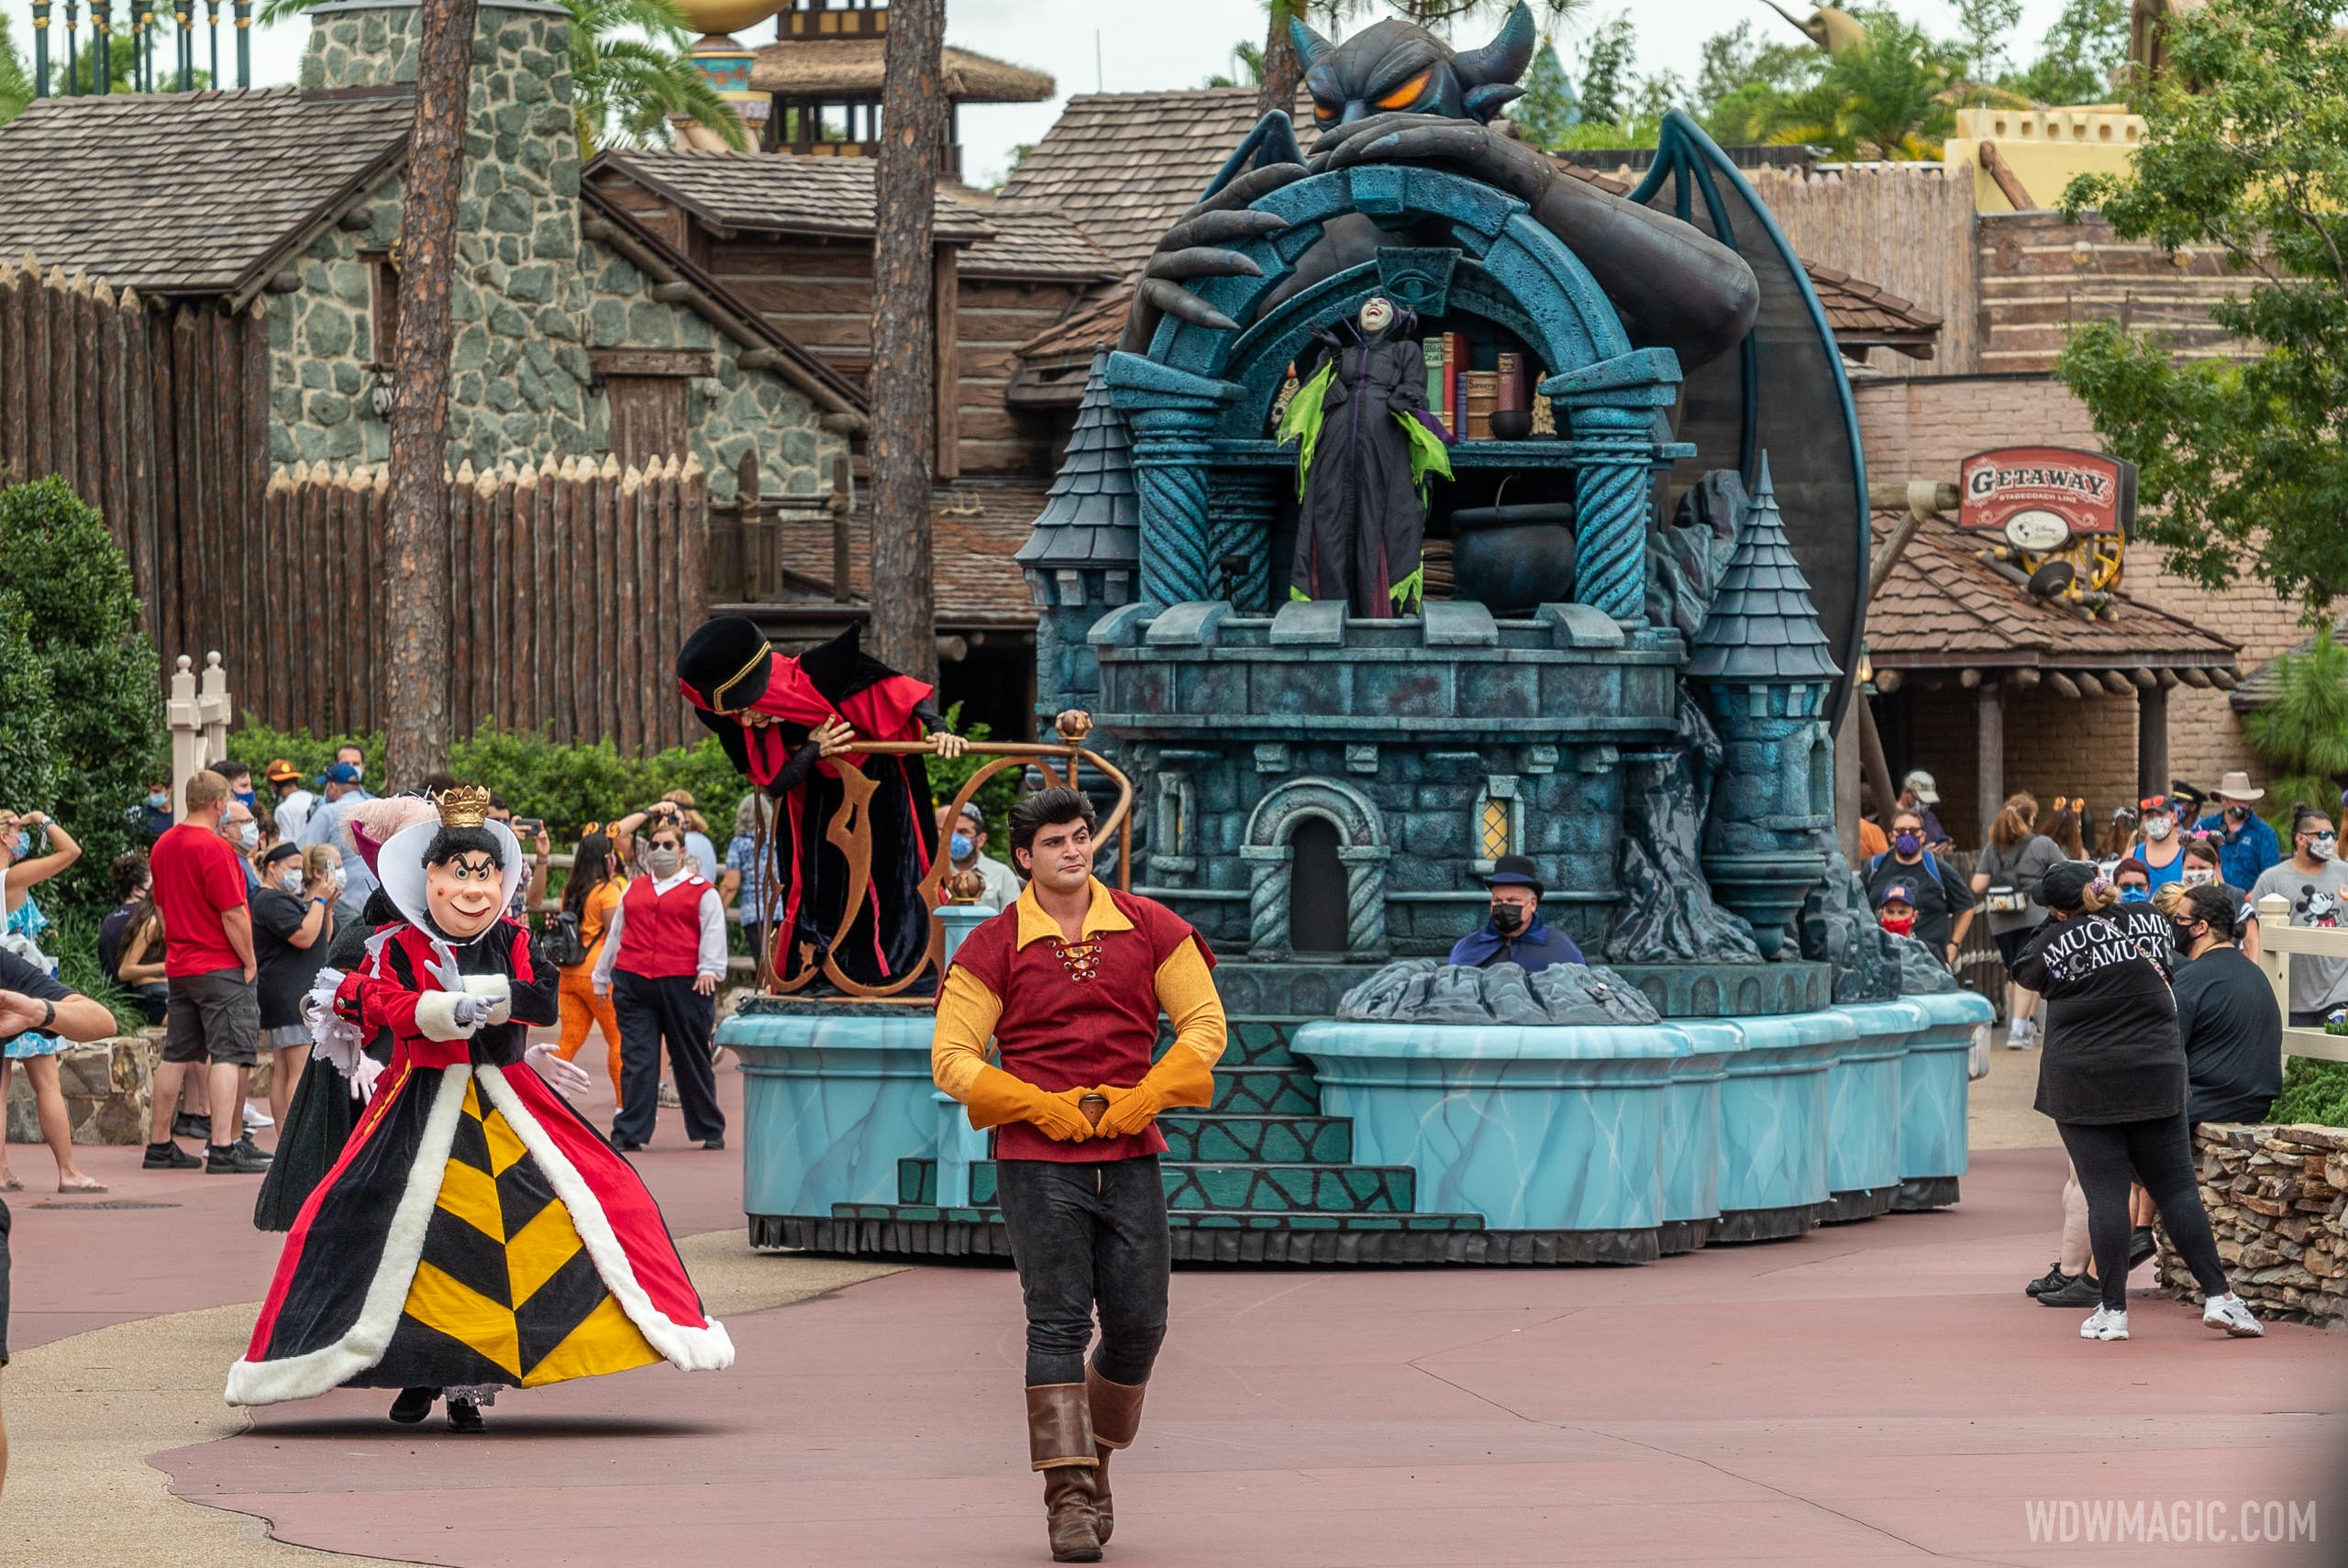 Disney Villains cavalcade